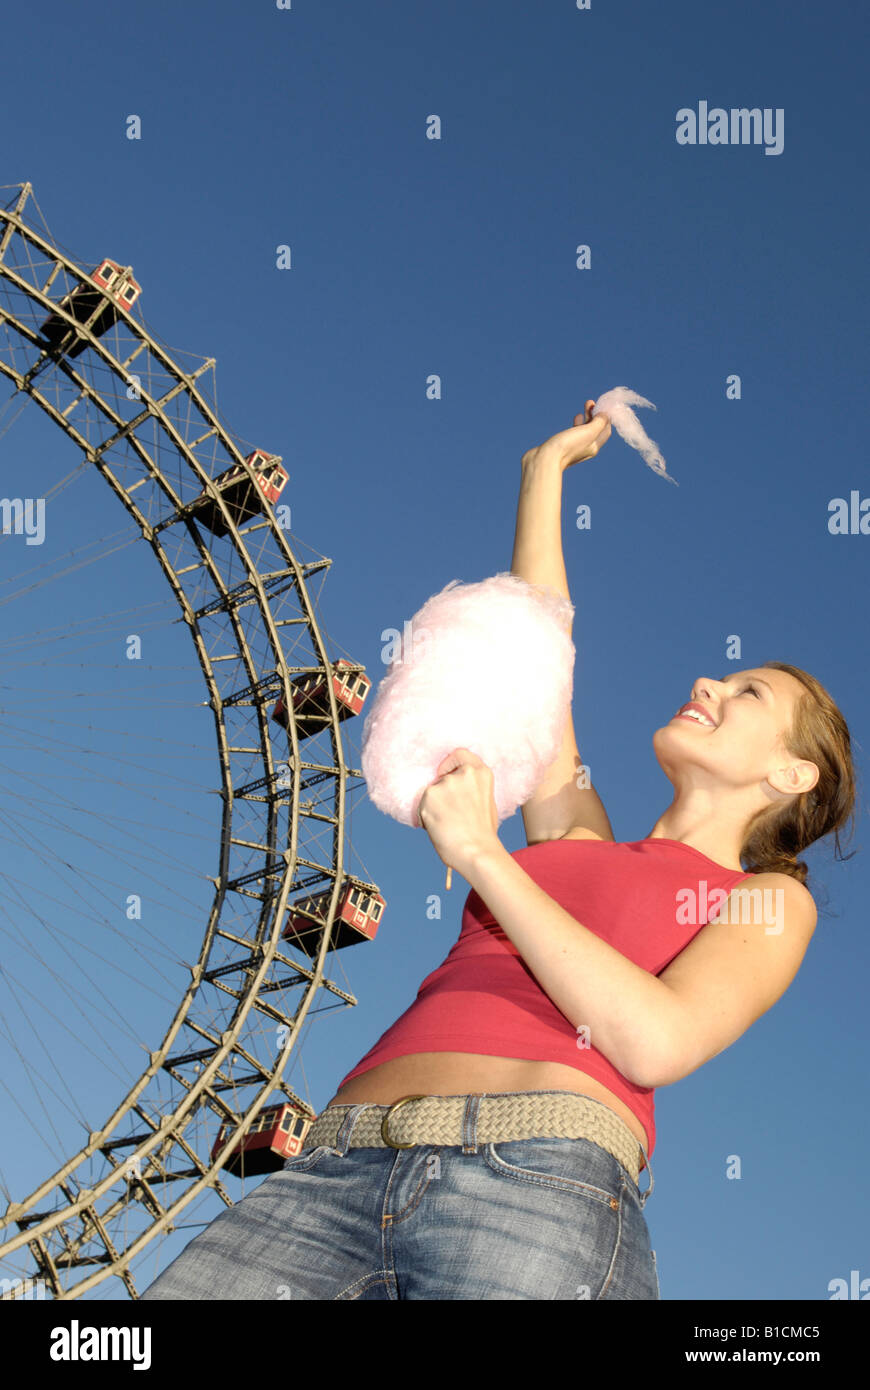 happy young woman with candy floss in front of the Wiener Riesenrad auf dem Prater, Austria, Vienna Stock Photo